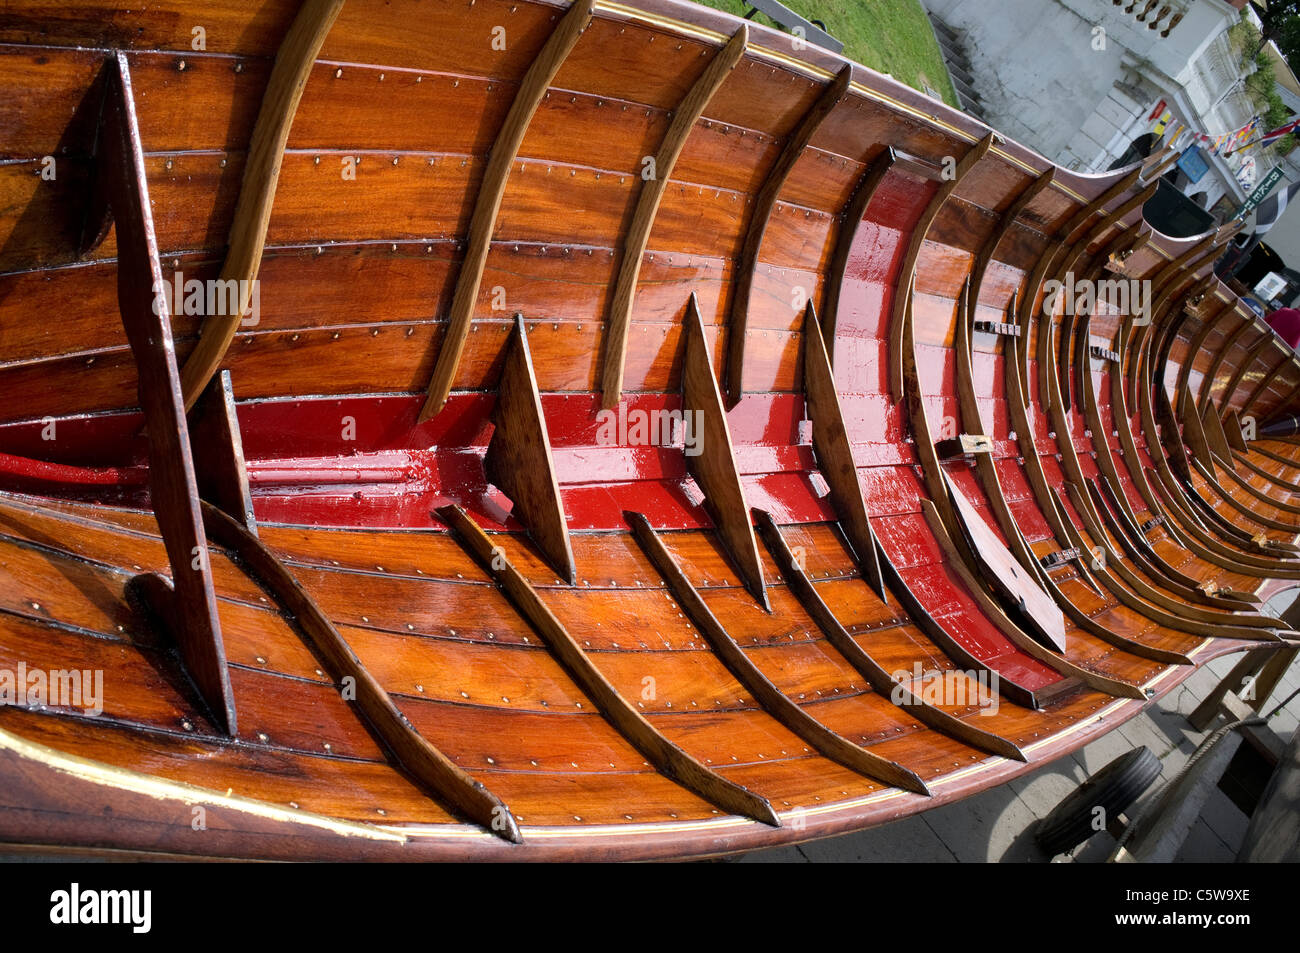 Newly Varnished Rowing Boat Interior at Richmond - Stock Image